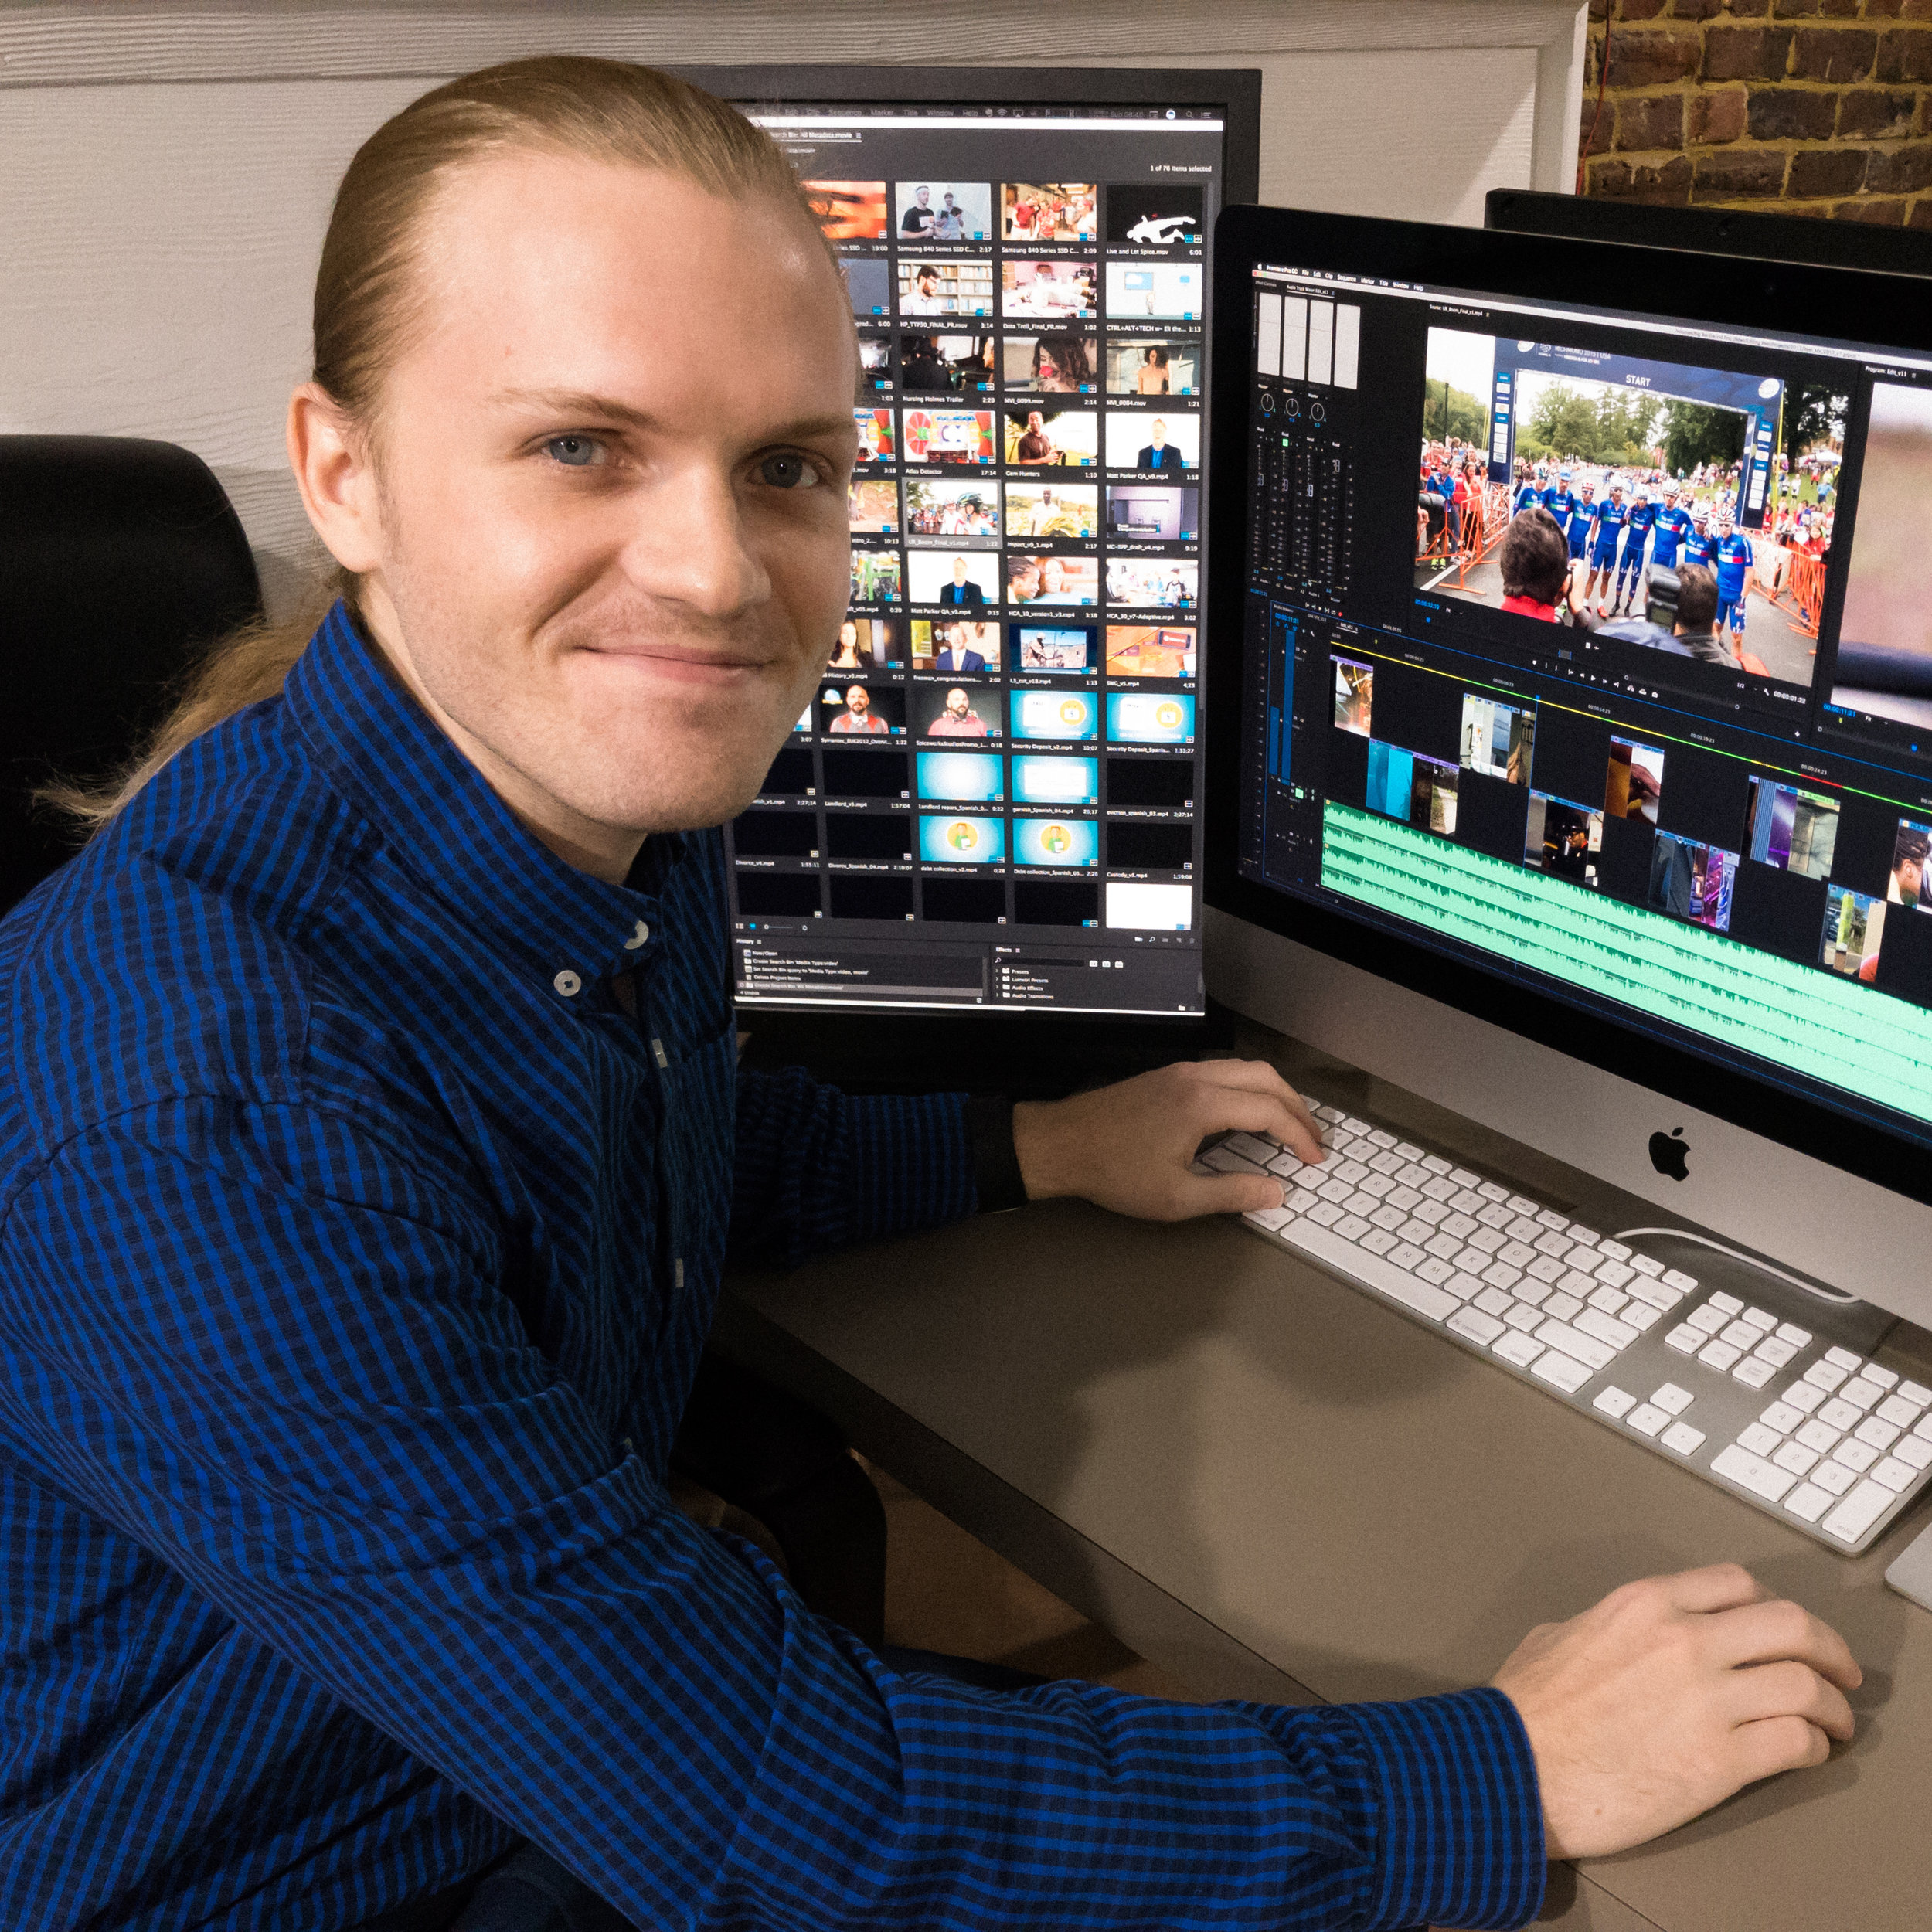 Micah Vanderlinden - Video Editor, Motion Designer